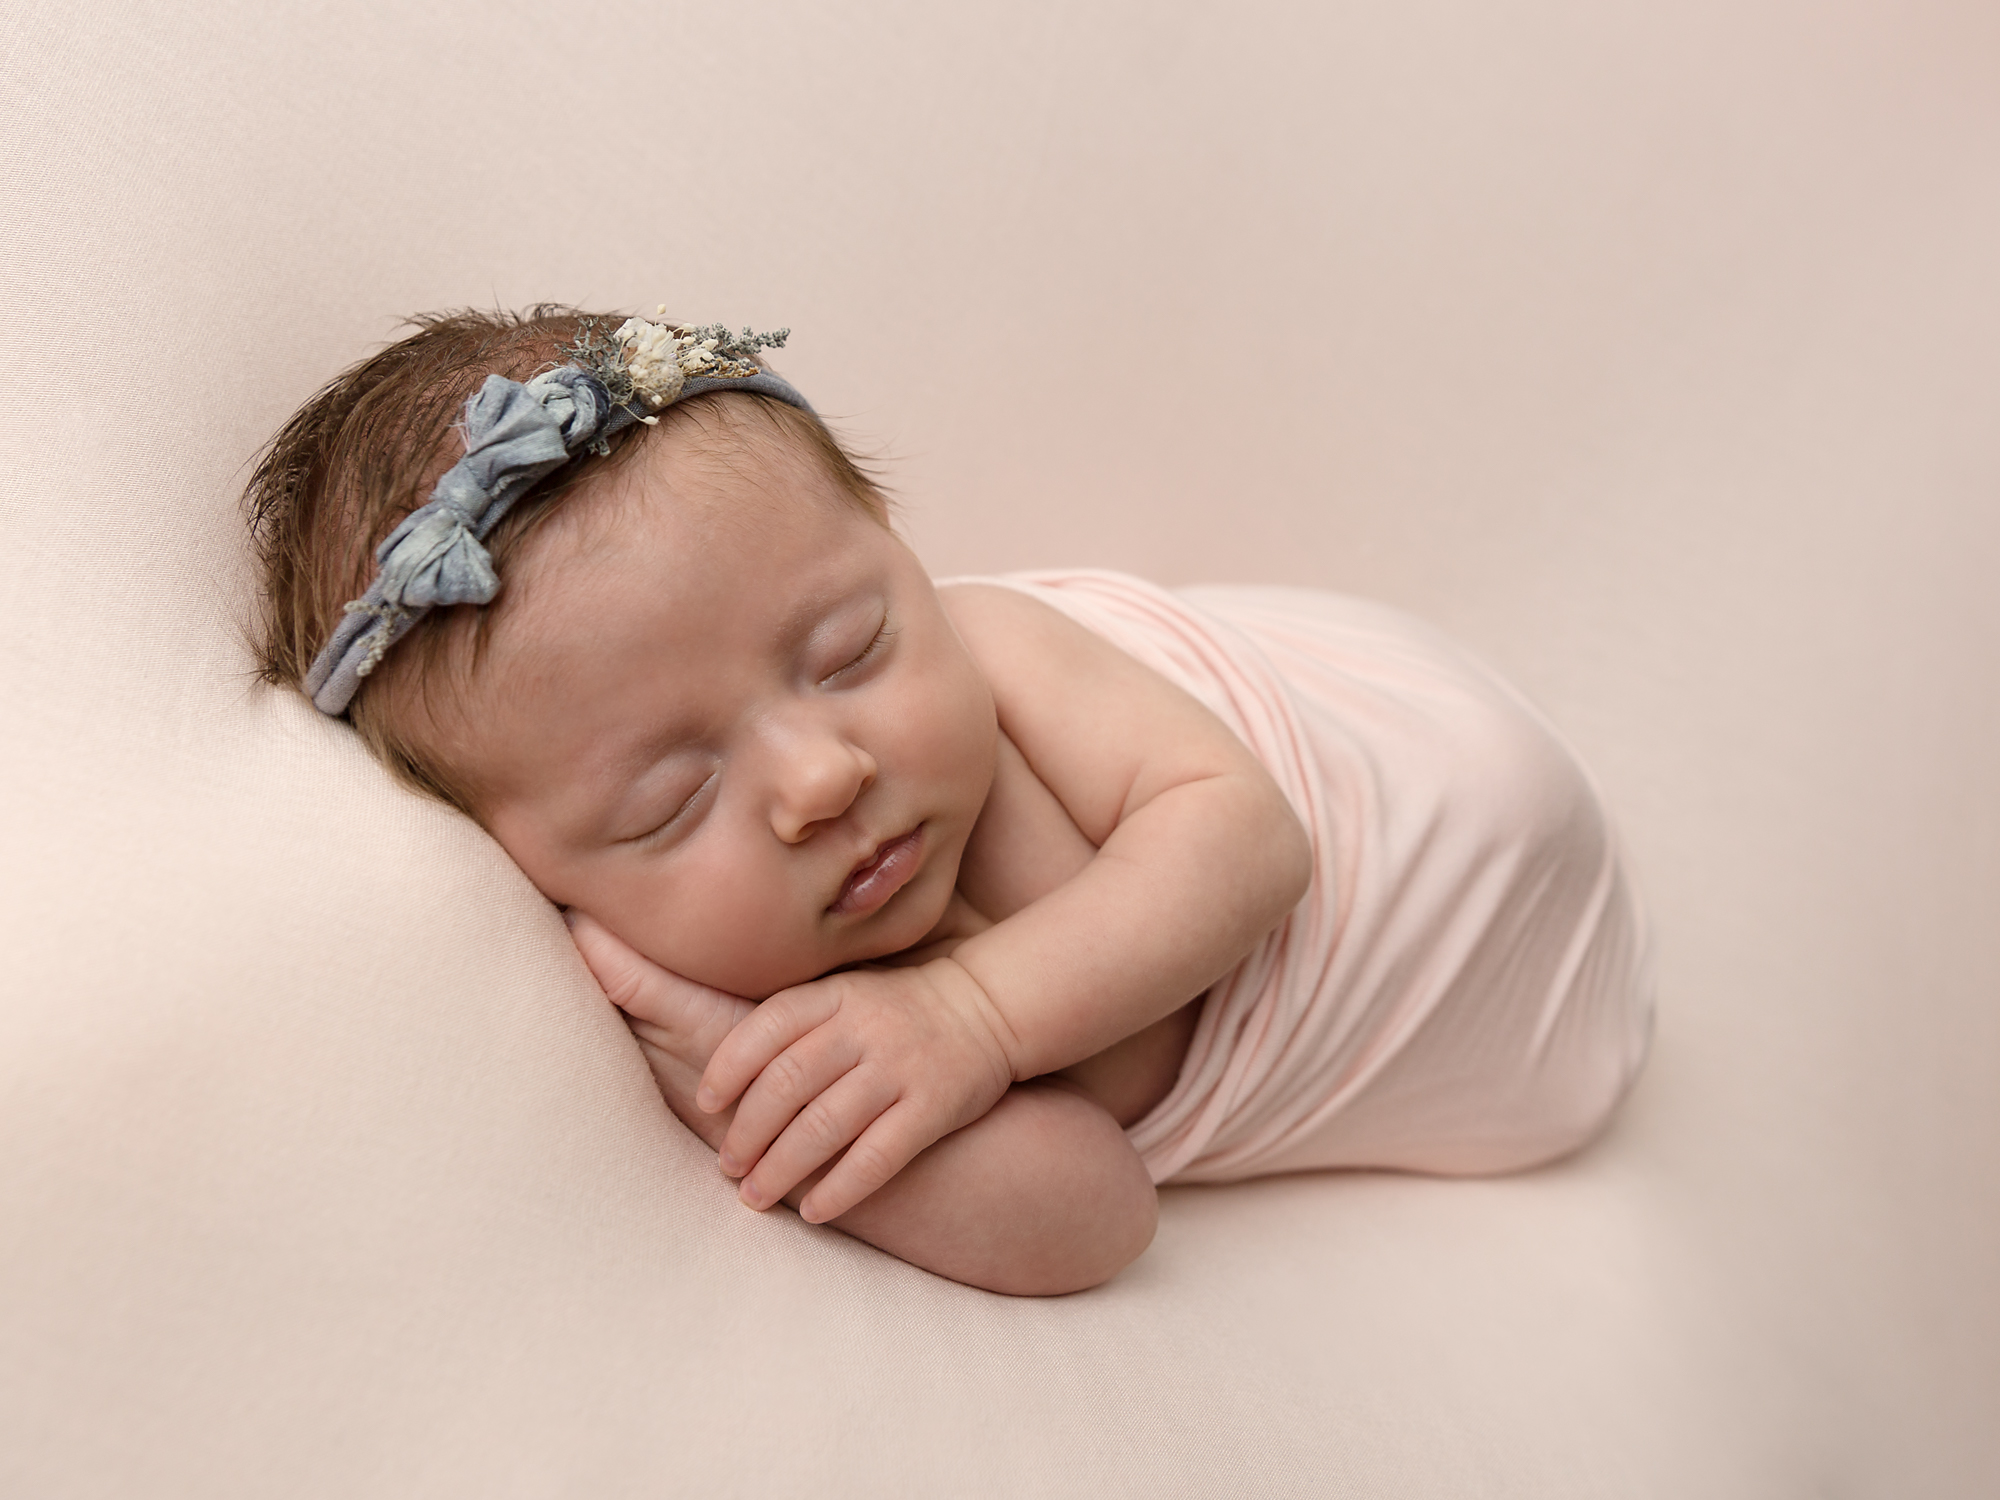 baby and newborn photographer in caerphilly, cardiff, south wales